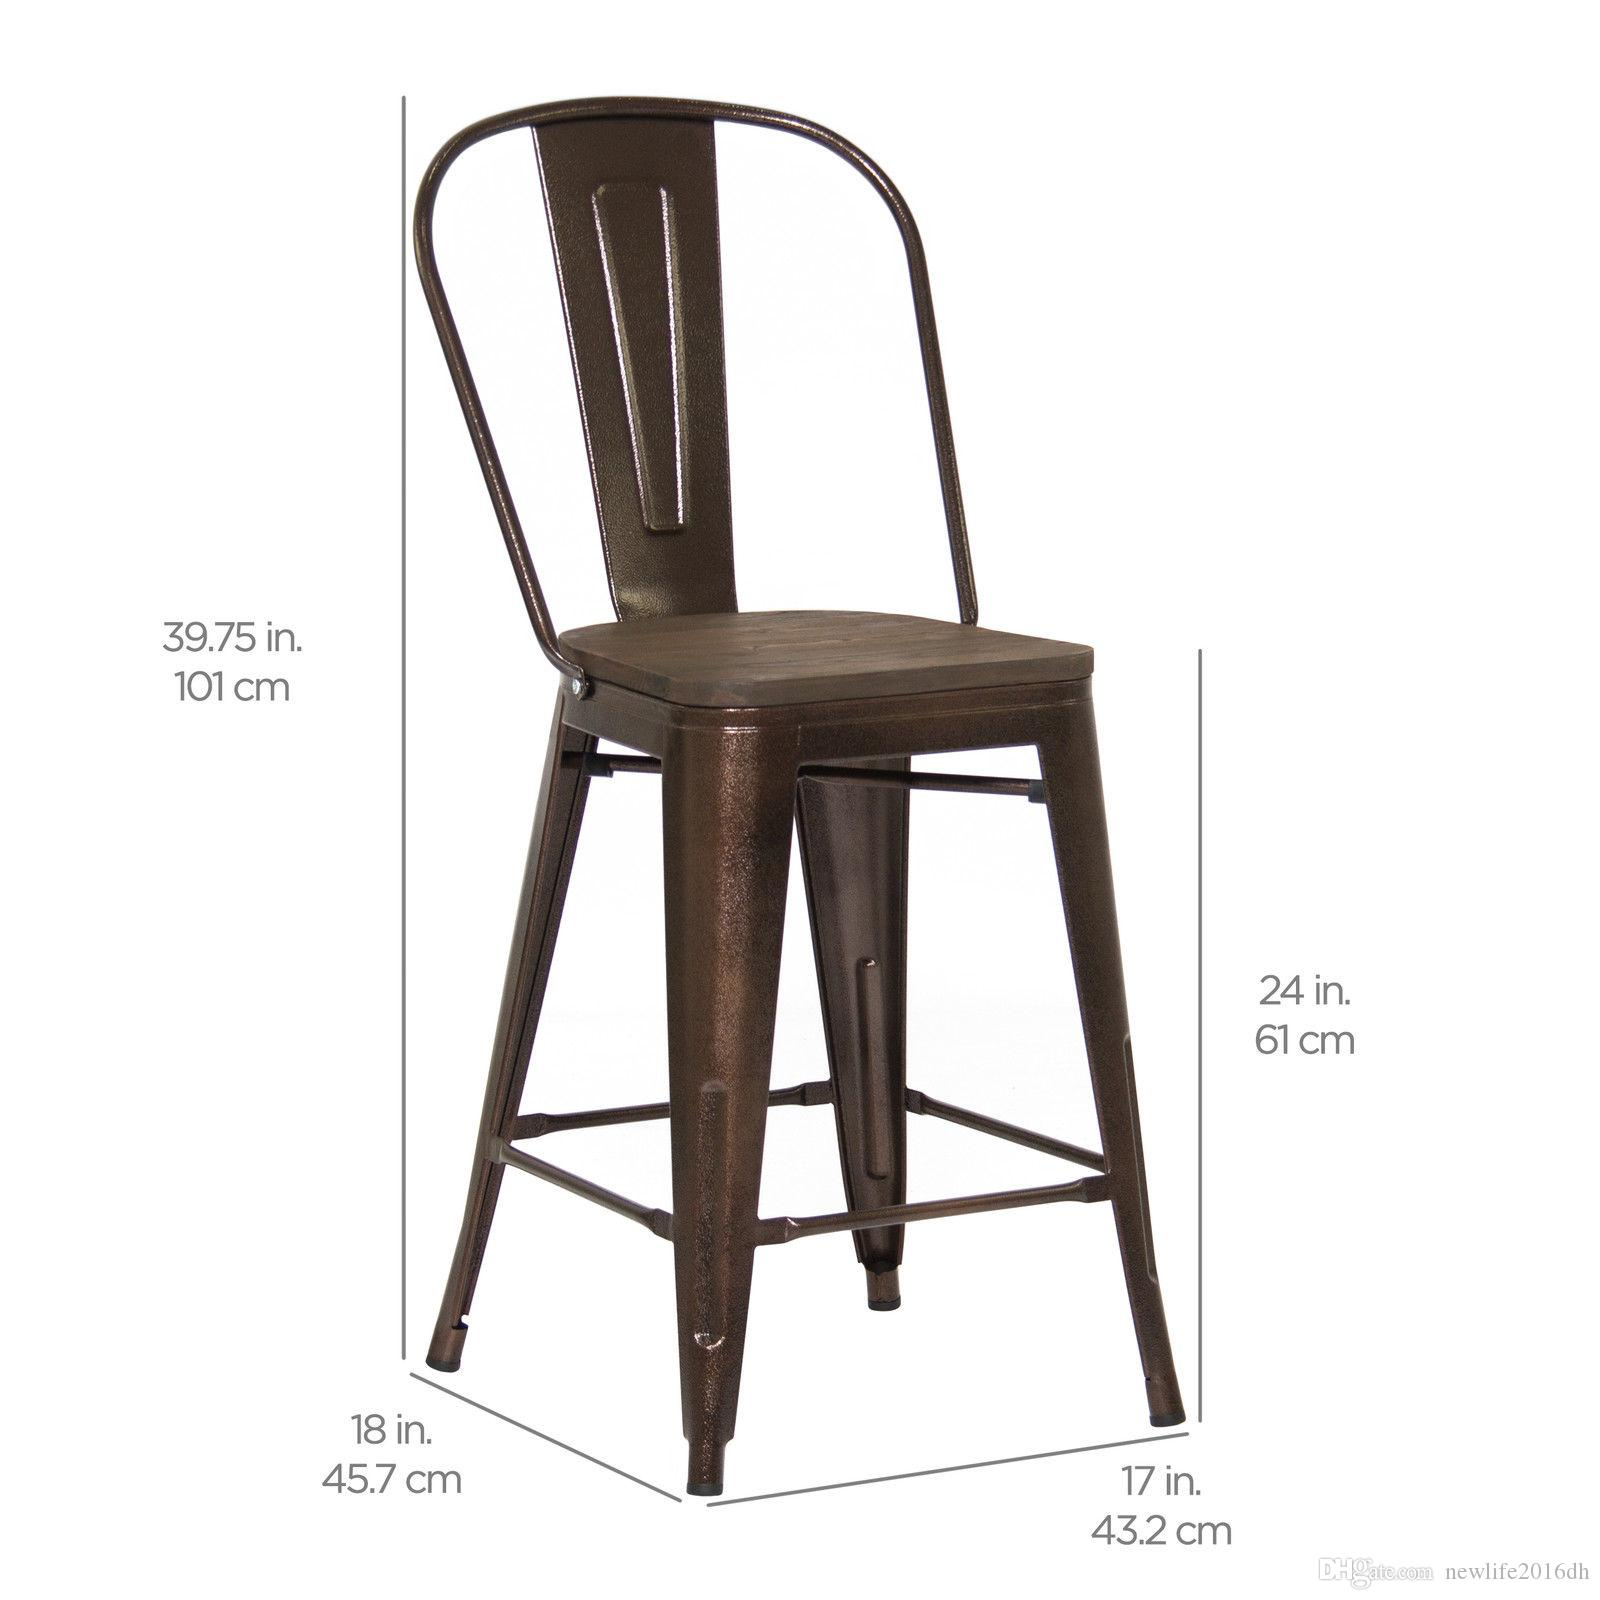 Cool 2019 Industrial Style Set Of 2 Counter Height Metal Wood Bar Stools Brown From Newlife2016Dh 95 48 Dhgate Com Machost Co Dining Chair Design Ideas Machostcouk